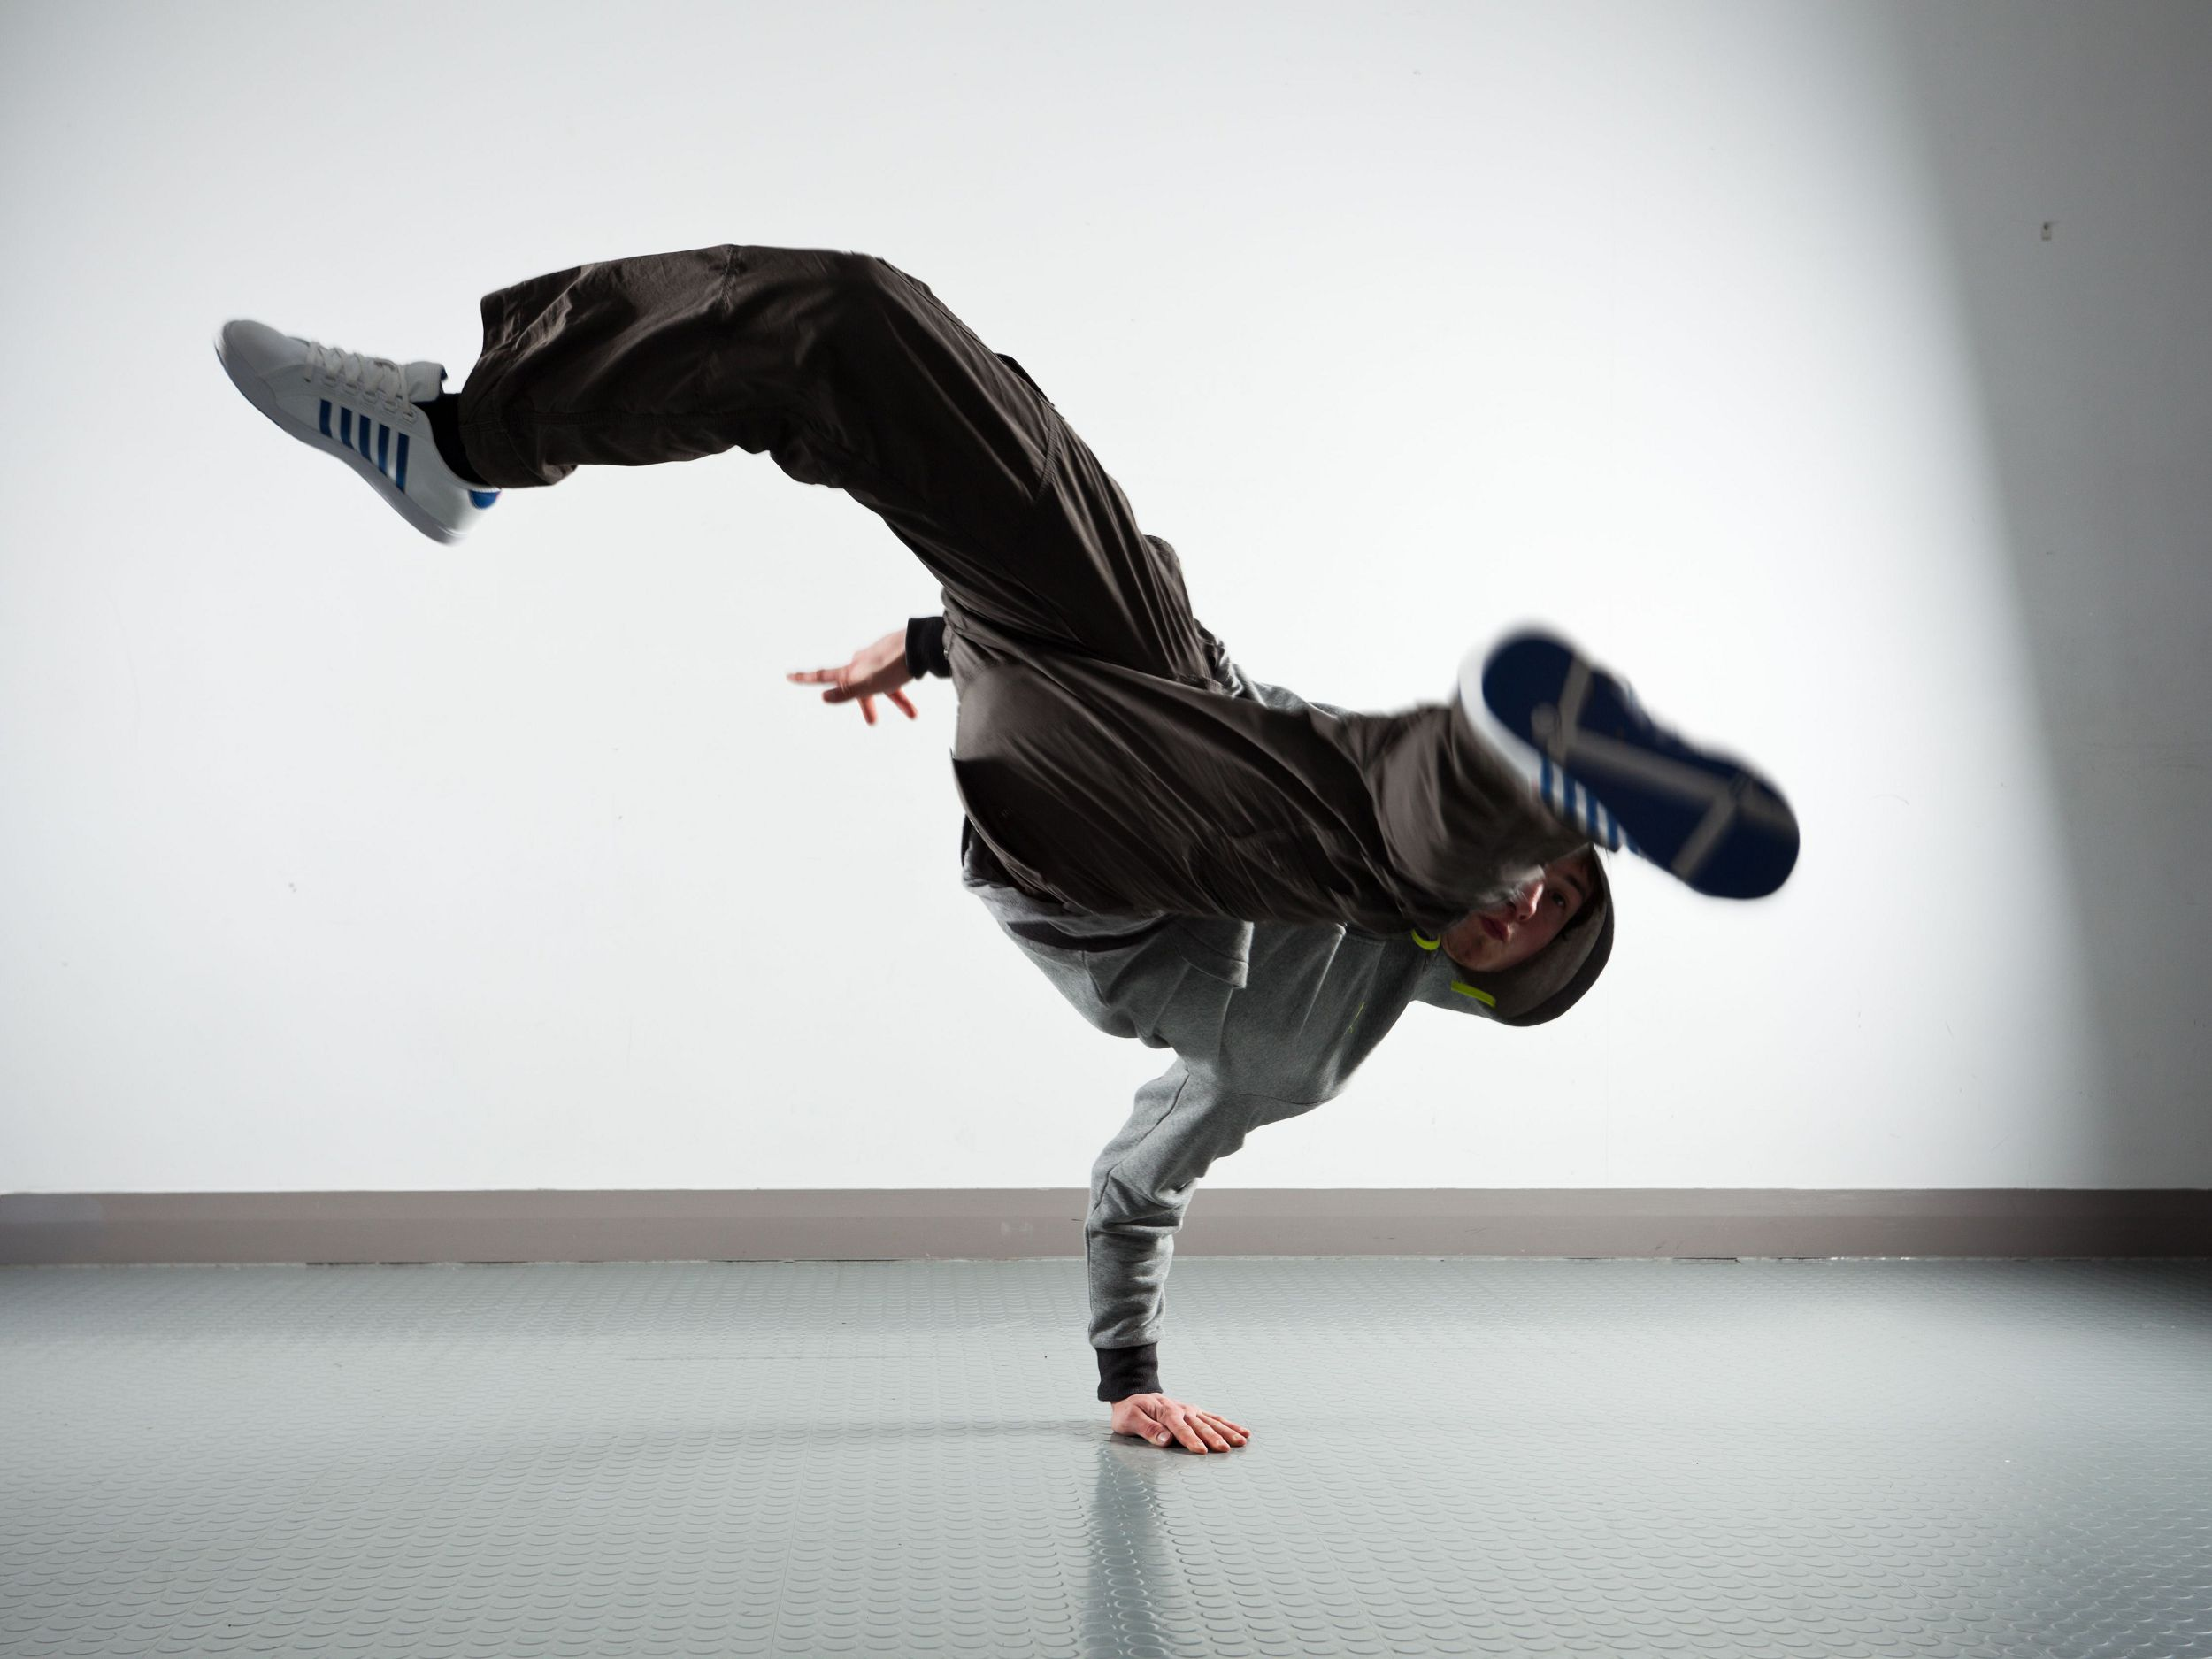 Breakdance Pictures